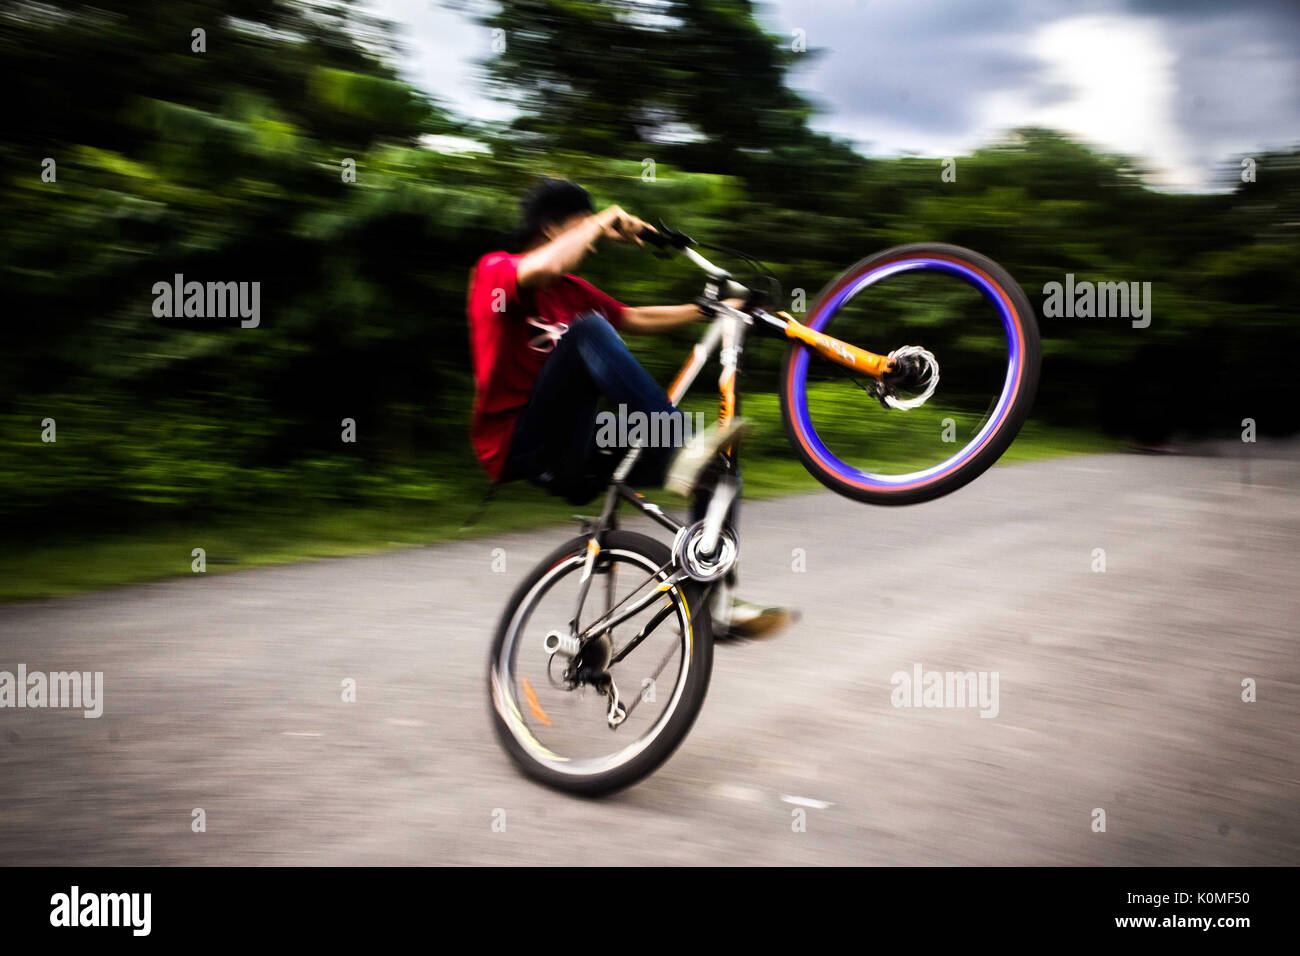 young boy doing by cycle stunts, kolkata, west Bengal, India, Asia - Stock Image